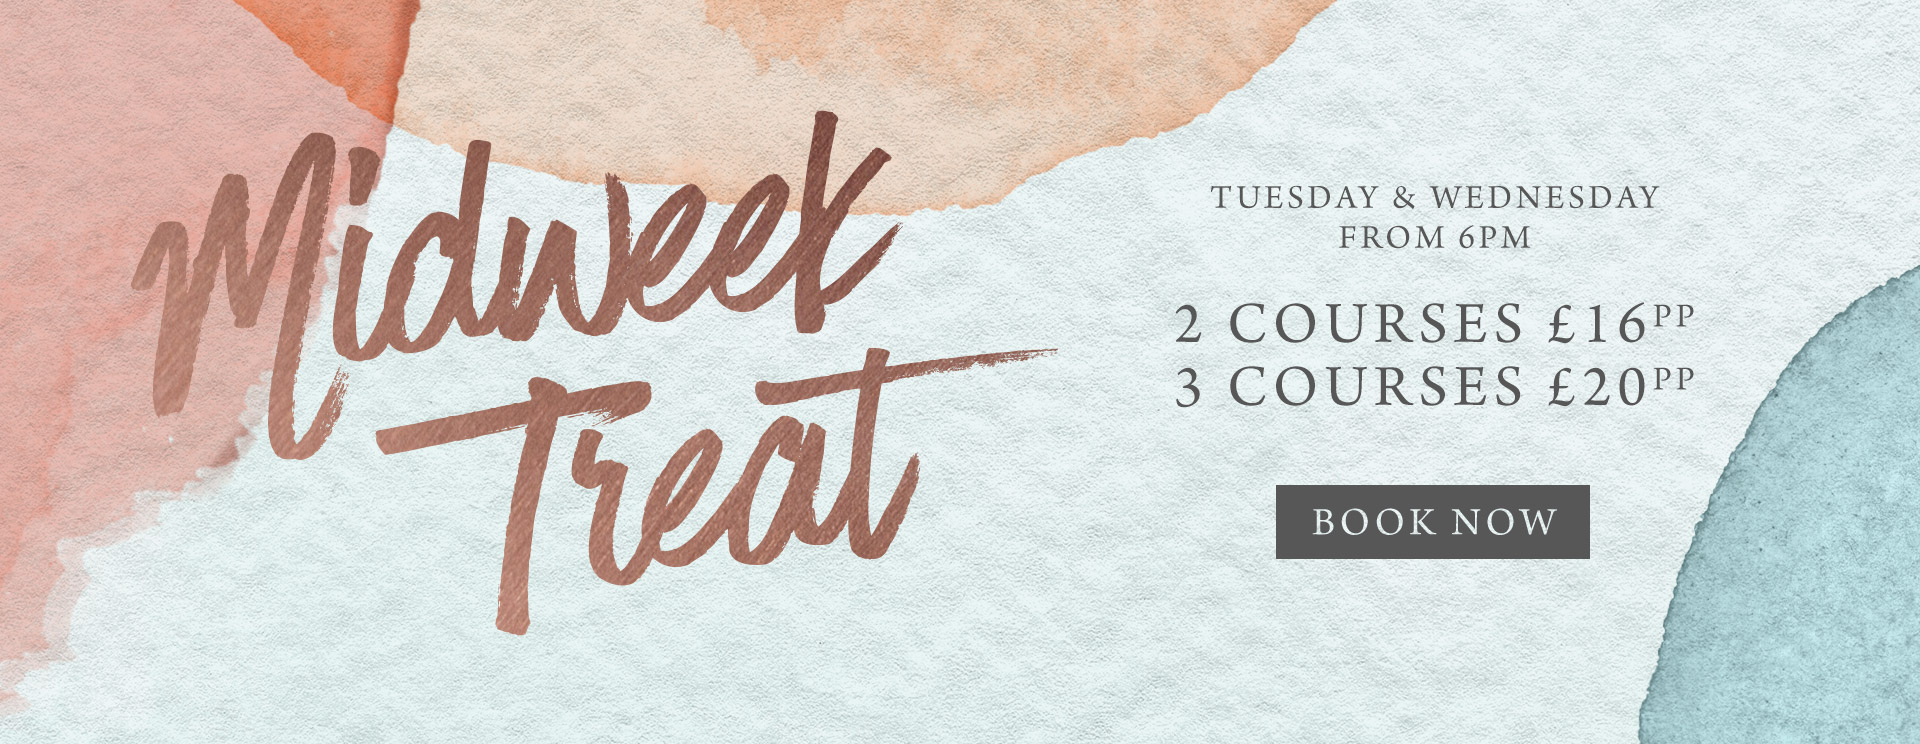 Midweek treat at The Goffs Oak - Book now